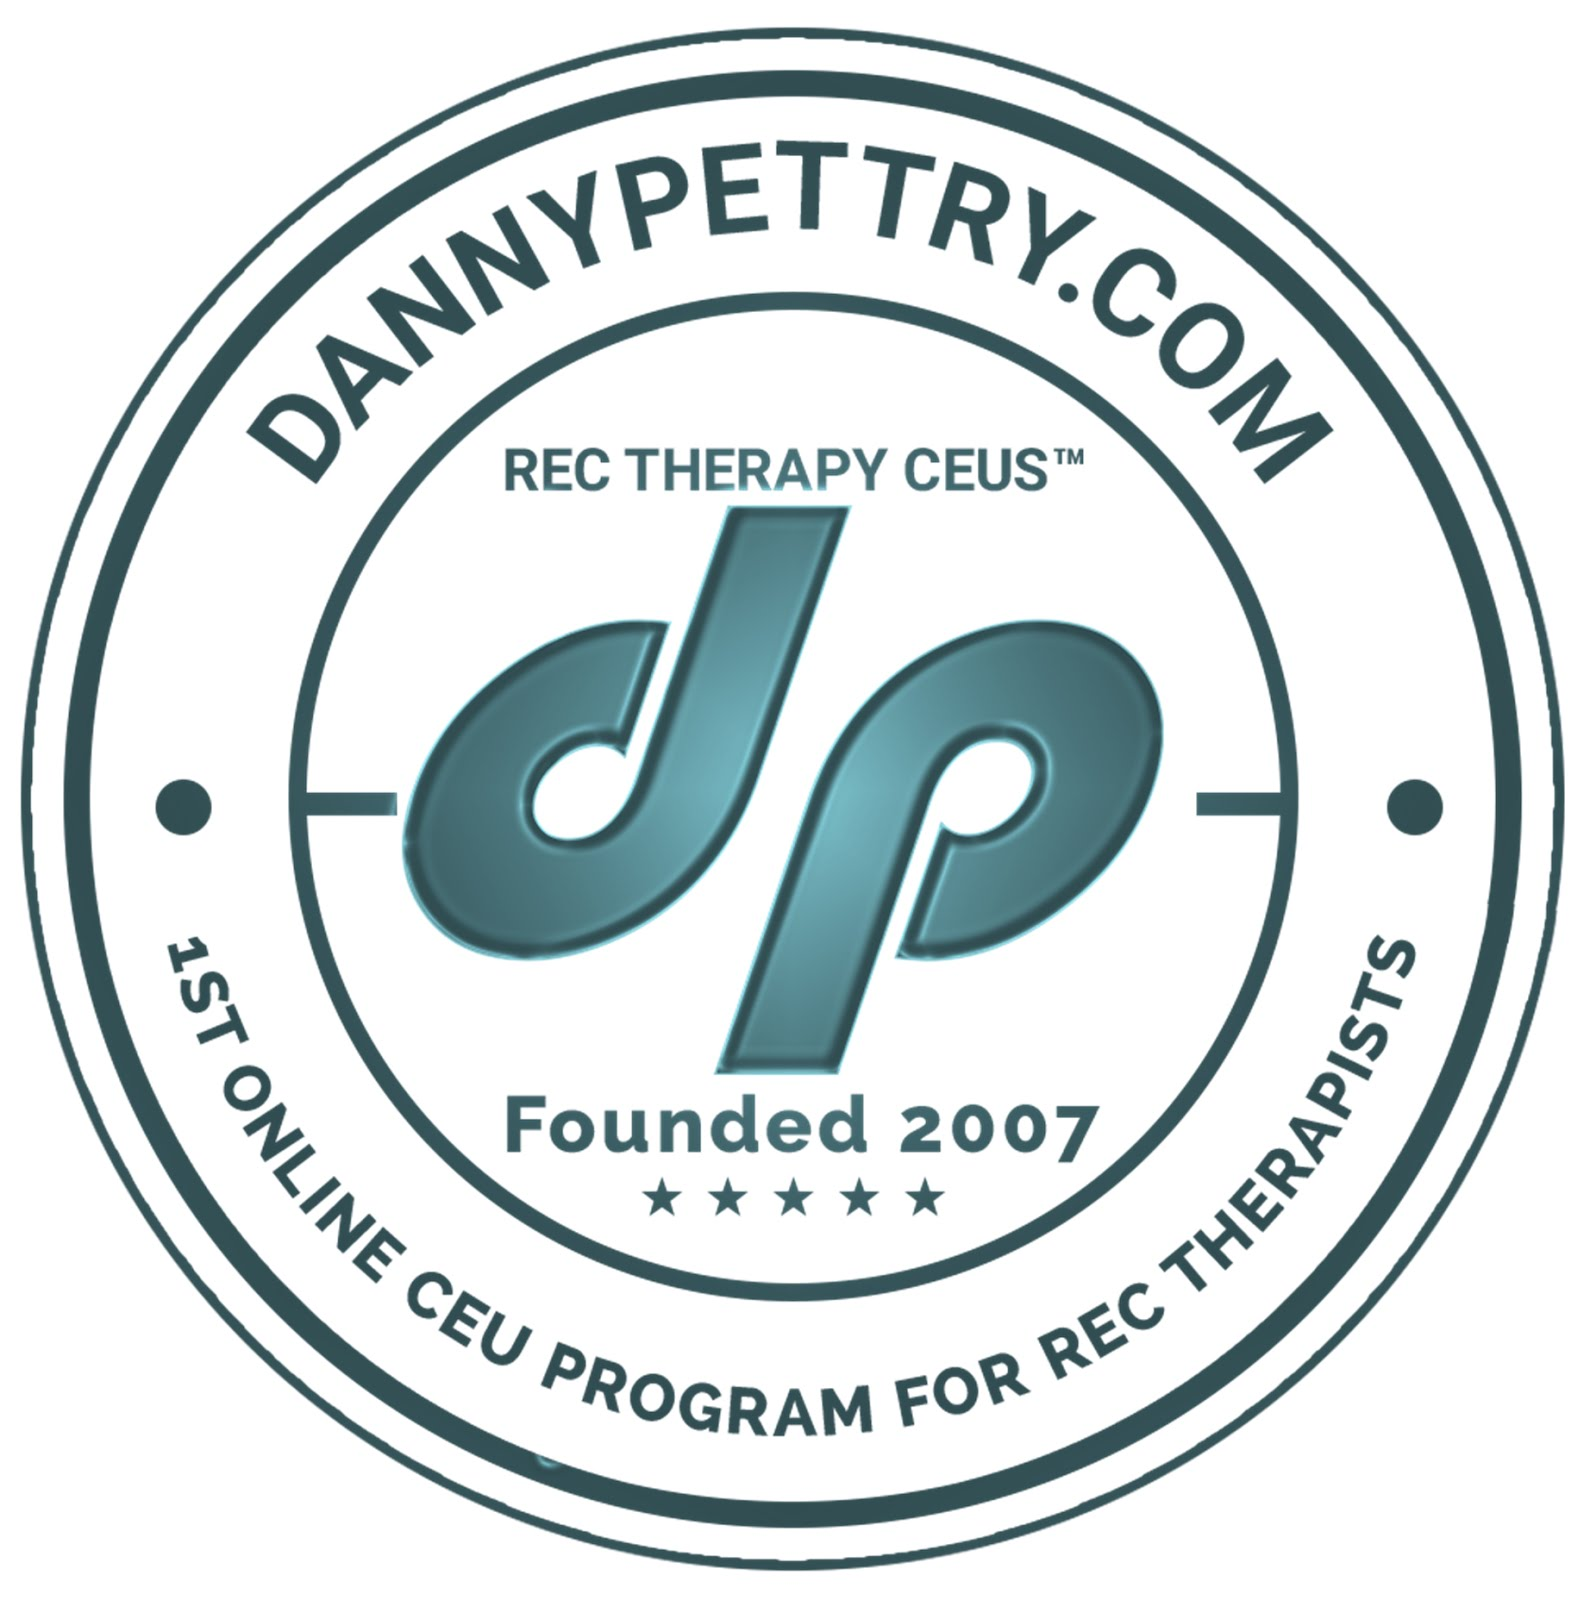 DannyPettry.com: the # 1 Self-Study CEU Program for the Rec Therapist